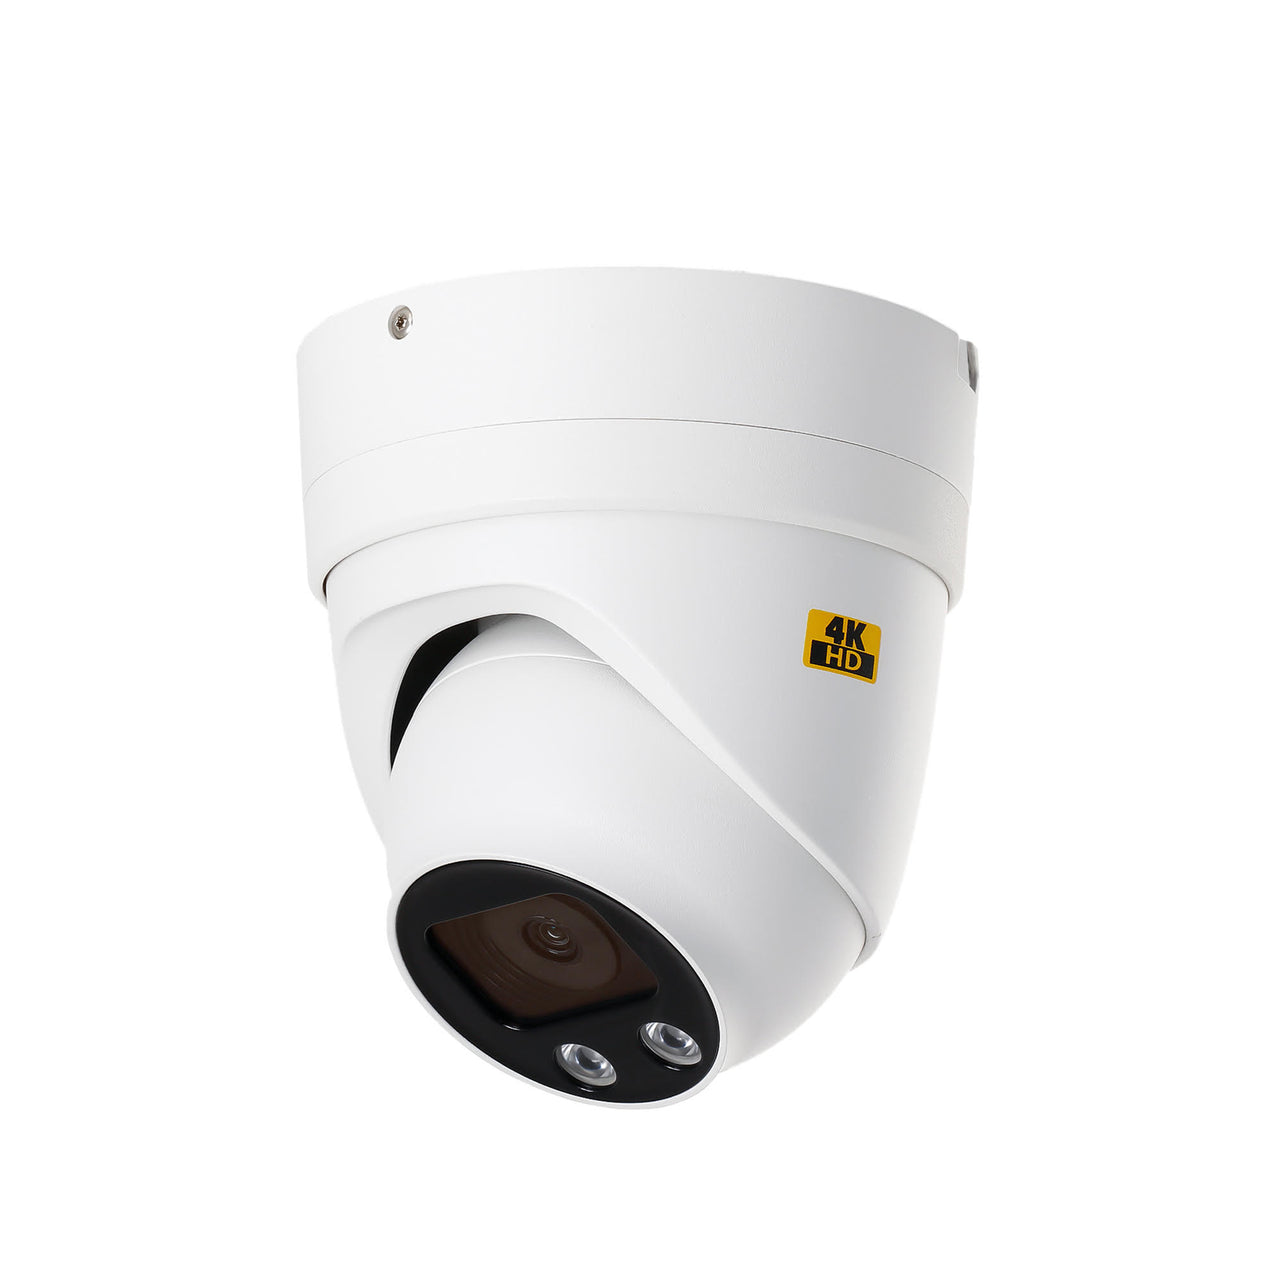 4K Usethatcam IP Dome Camera with Face Recognition